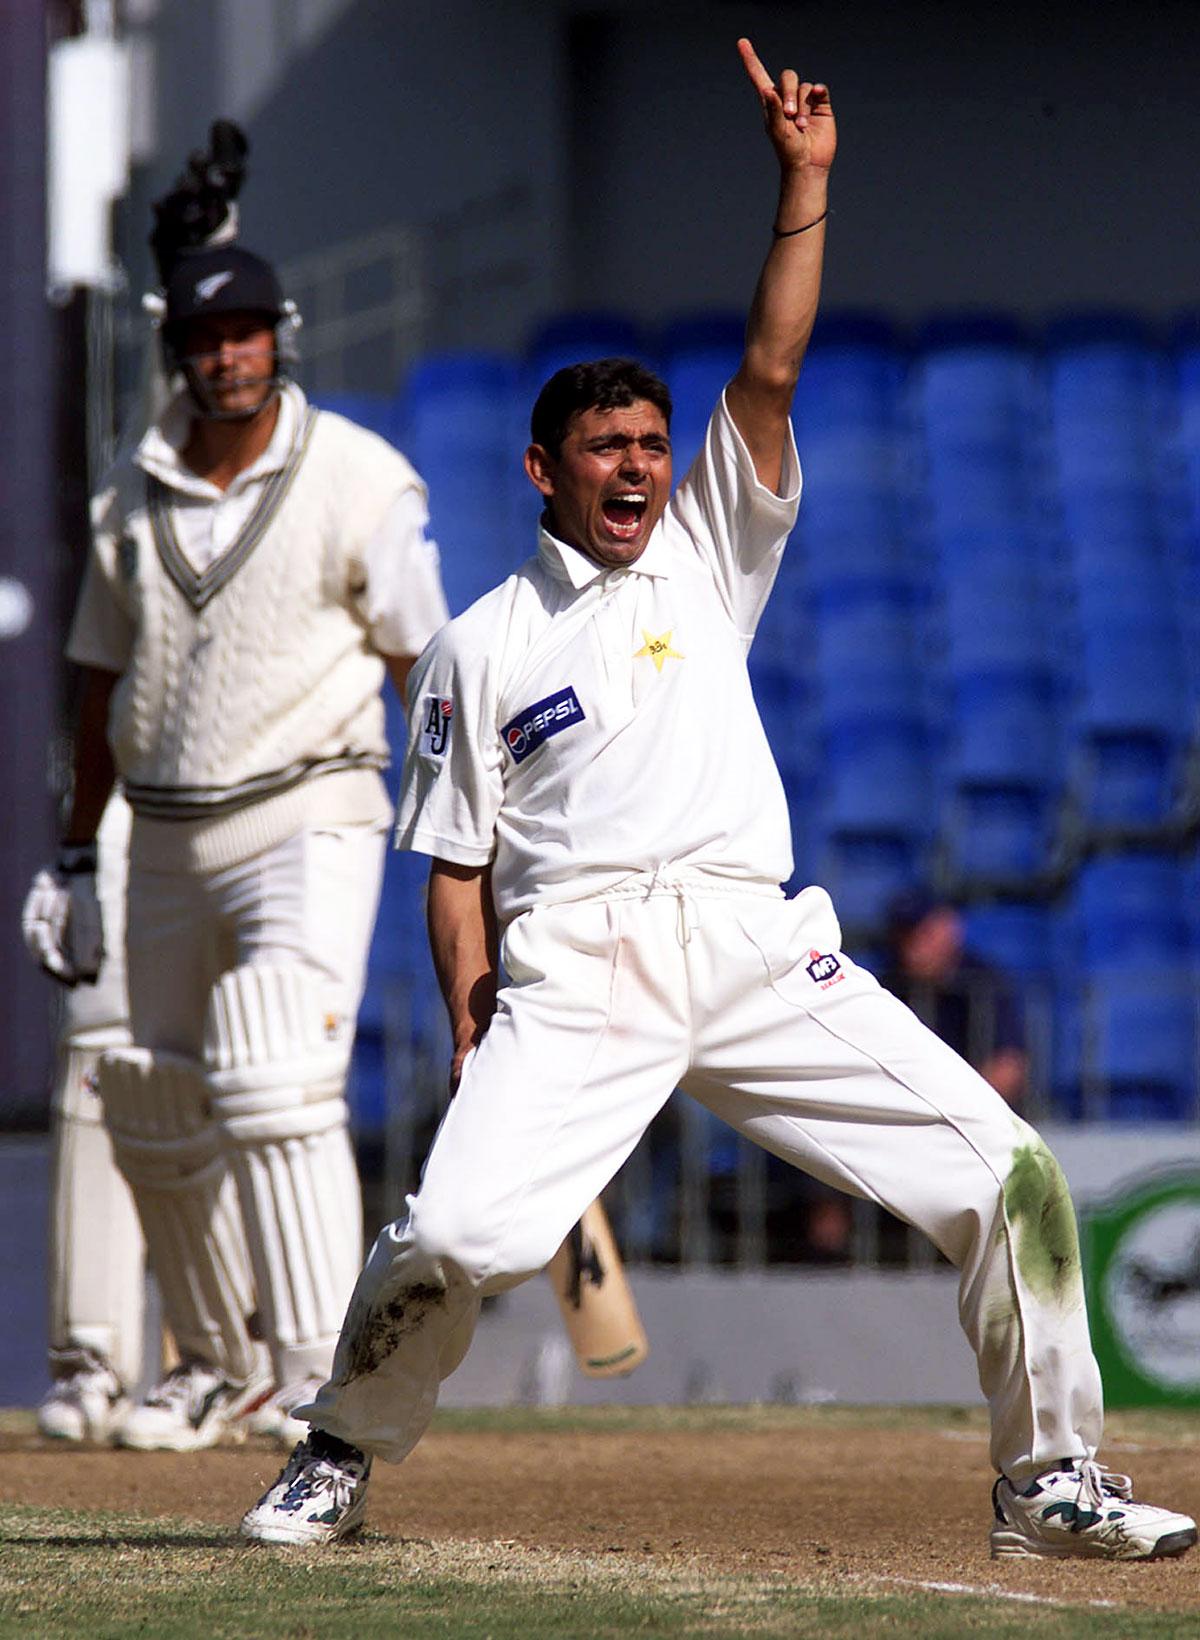 The 2001 Auckland Test between New Zealand and Pakistan contained a record 108 appeals